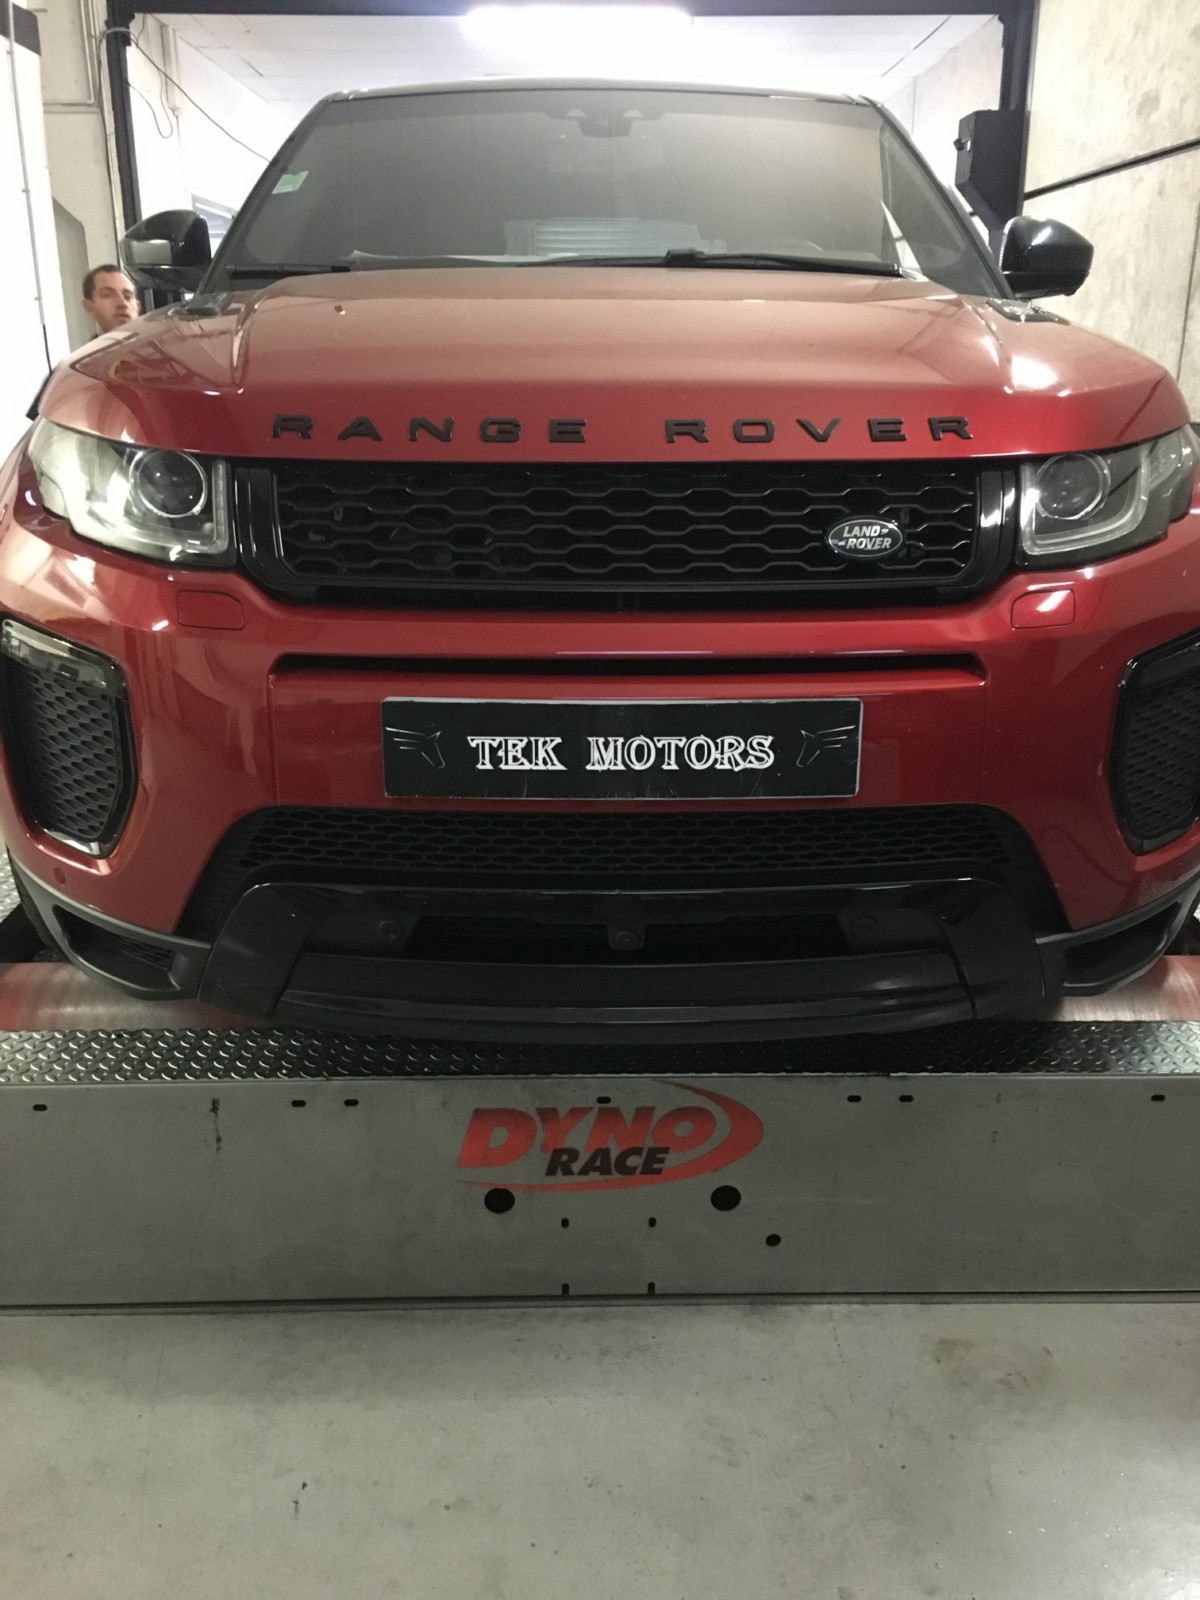 reprogrammation moteur land rover evoque 2 0l 177cv by tek motors i paris tek motors. Black Bedroom Furniture Sets. Home Design Ideas